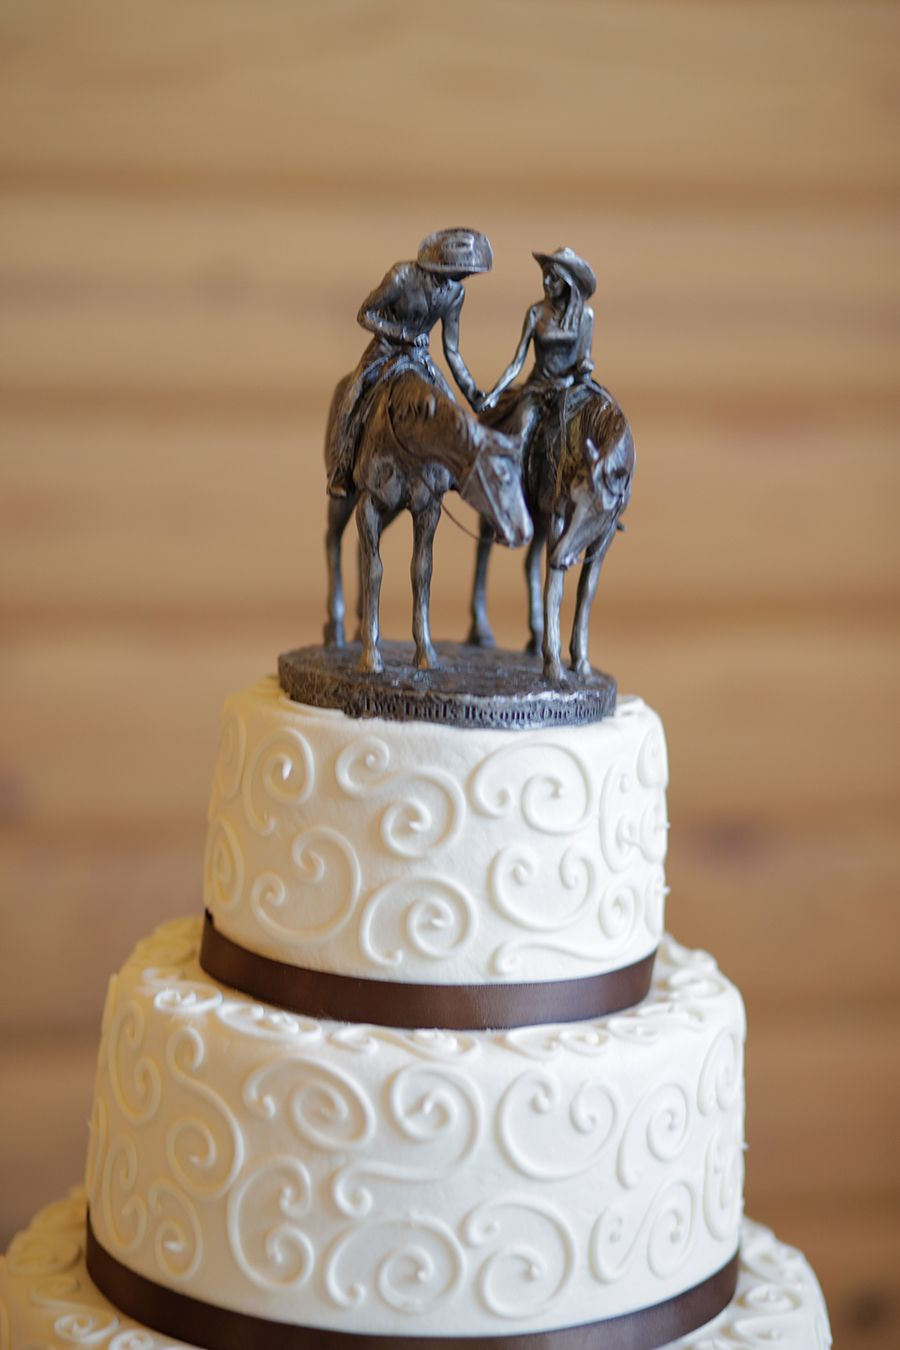 I Like The Design On This Cake Only With Flowers As Topper Cowboy Wedding